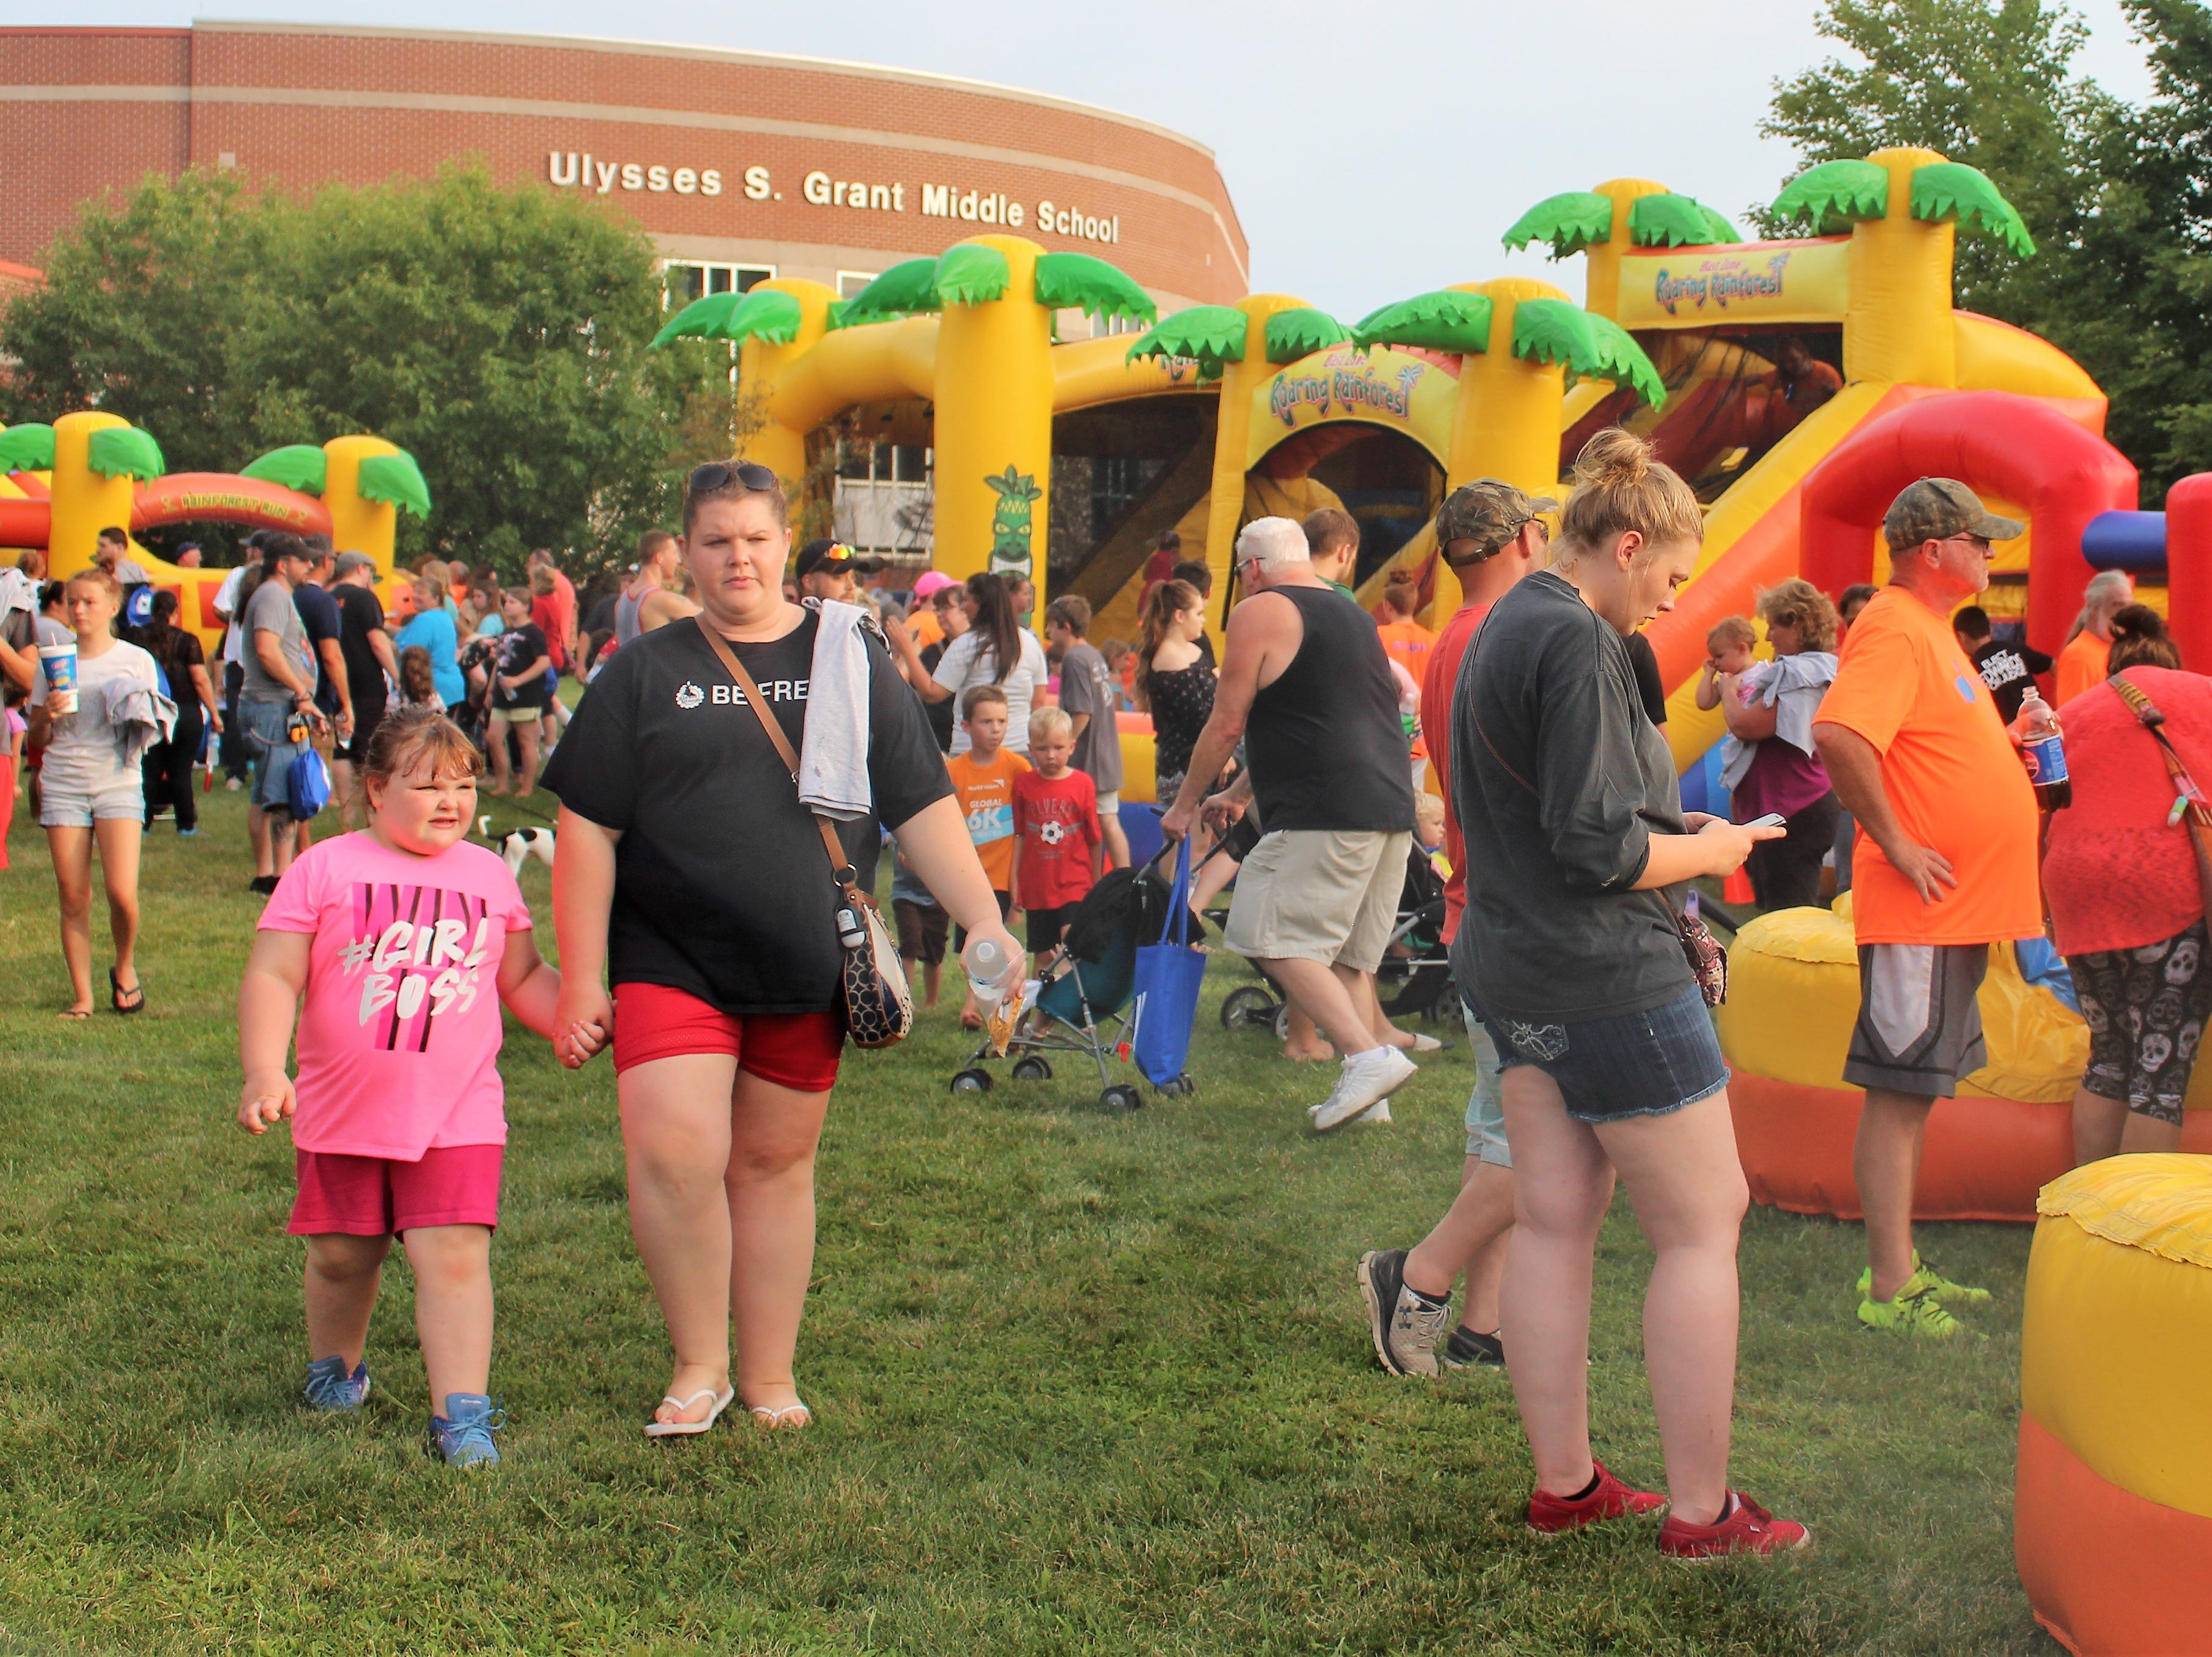 The event on Tuesday included food trucks, bouncy houses and information booths for the Marion County Sheriff's Office, county fire departments and Marion City Schools.